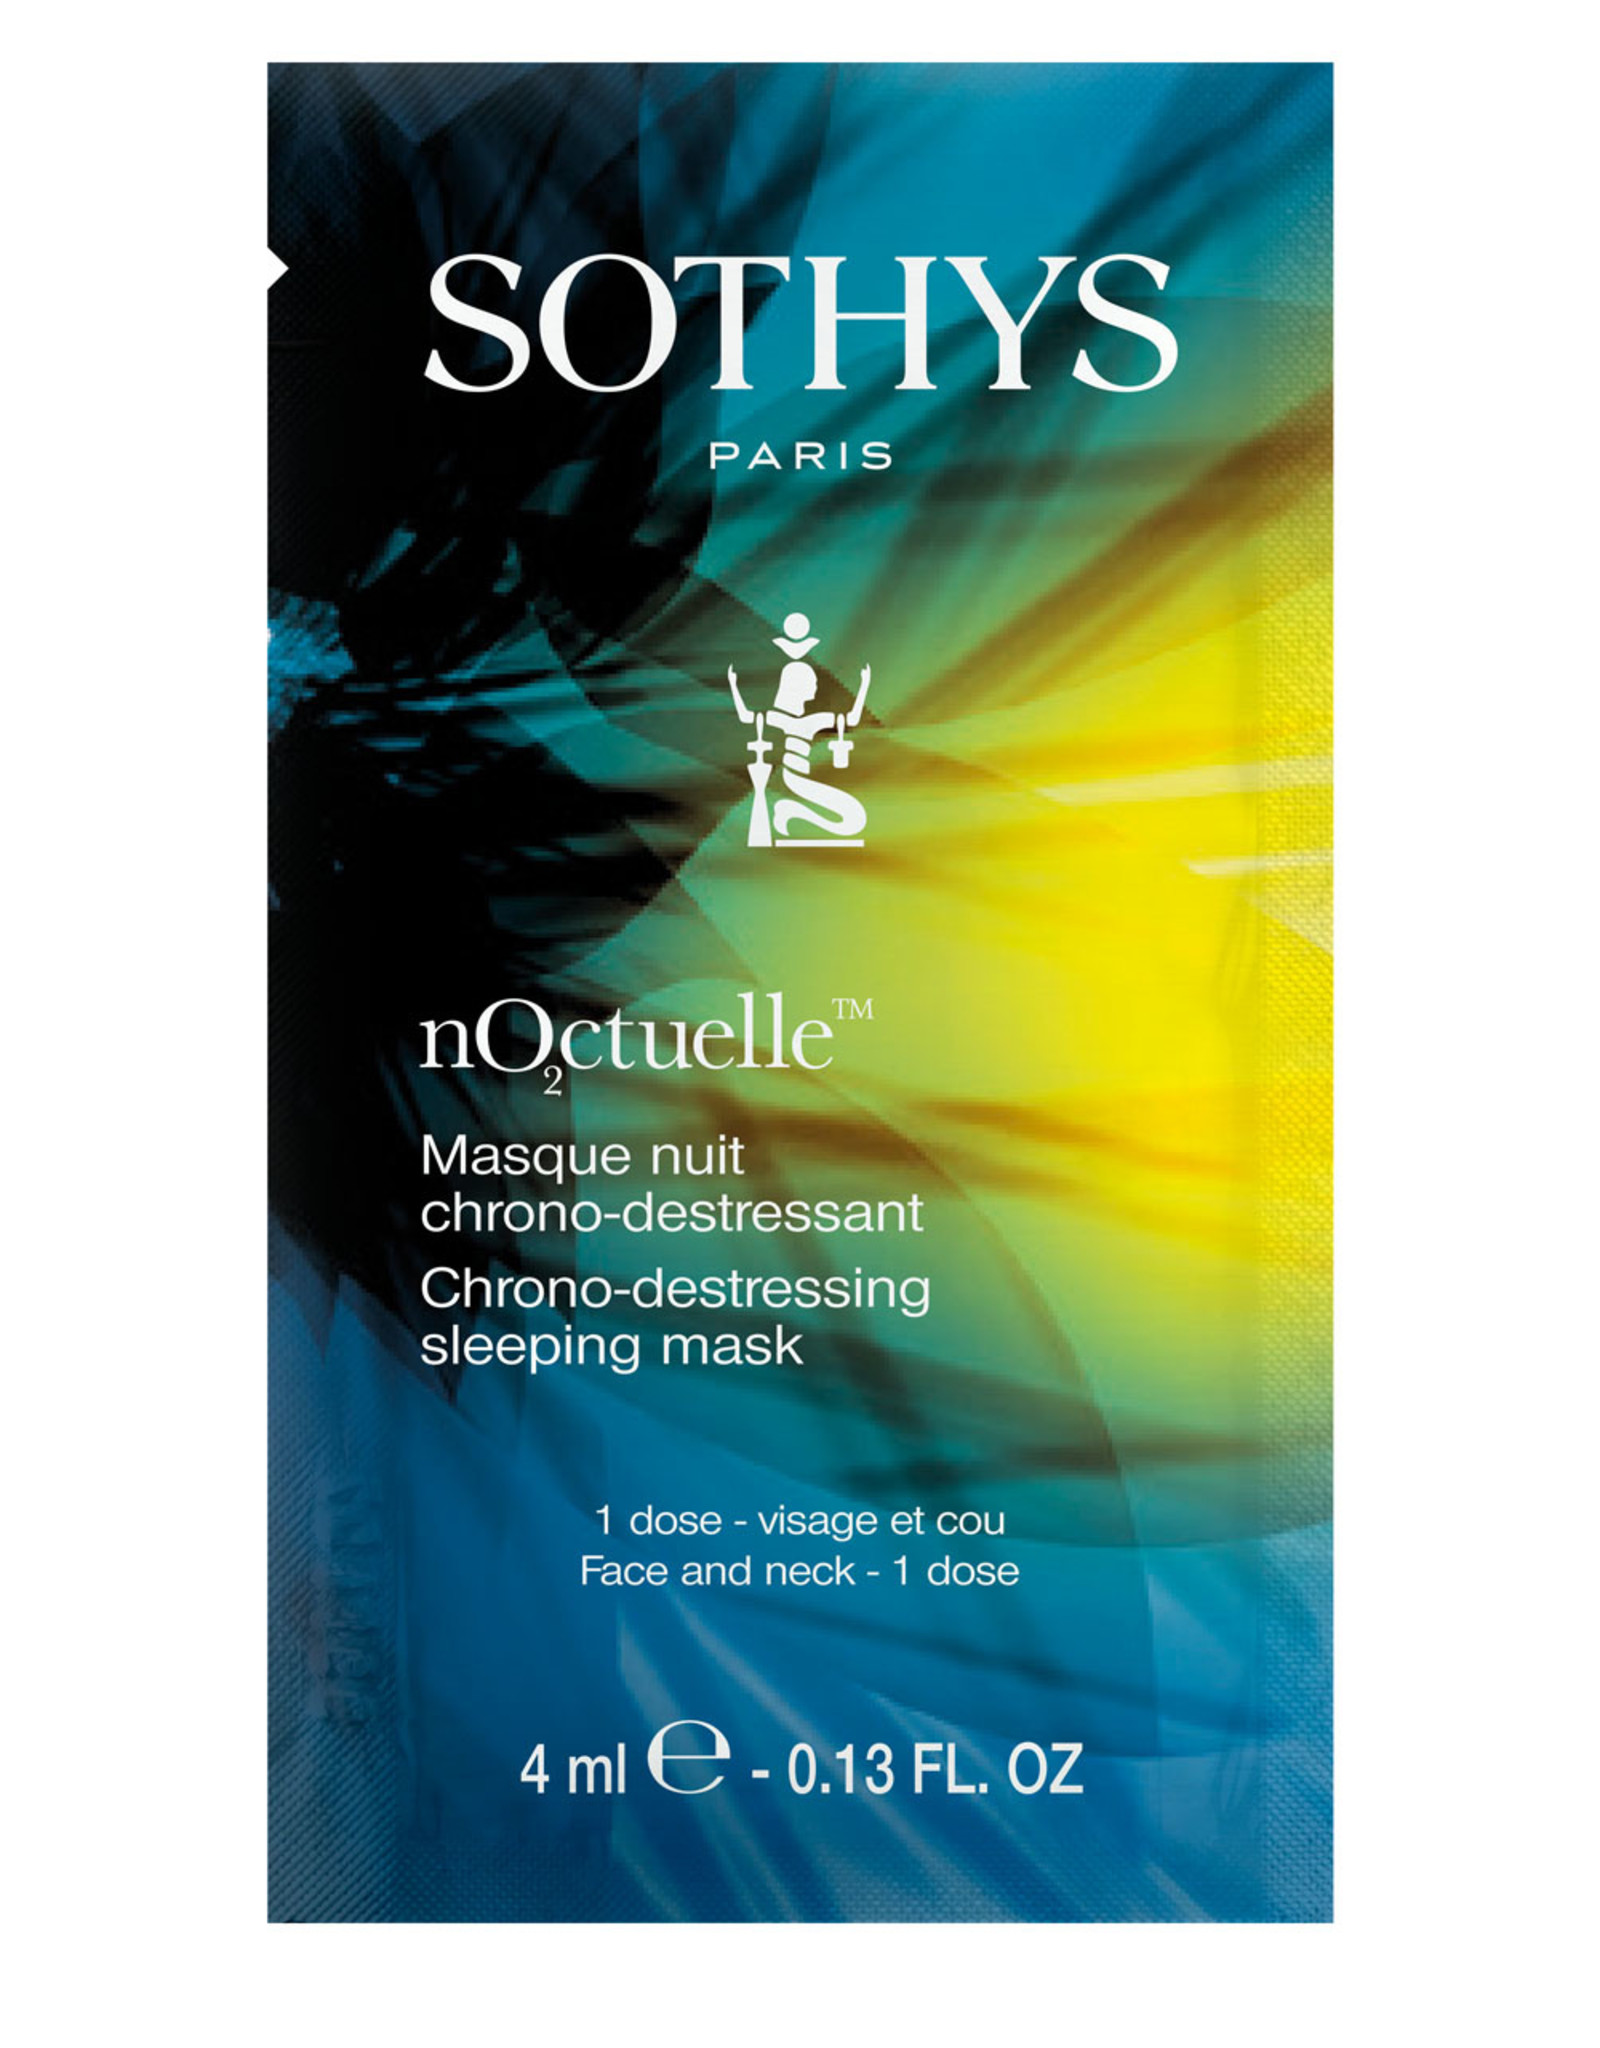 SOTHYS nO2ctuelle™ - Chrono-destressing sleeping mask